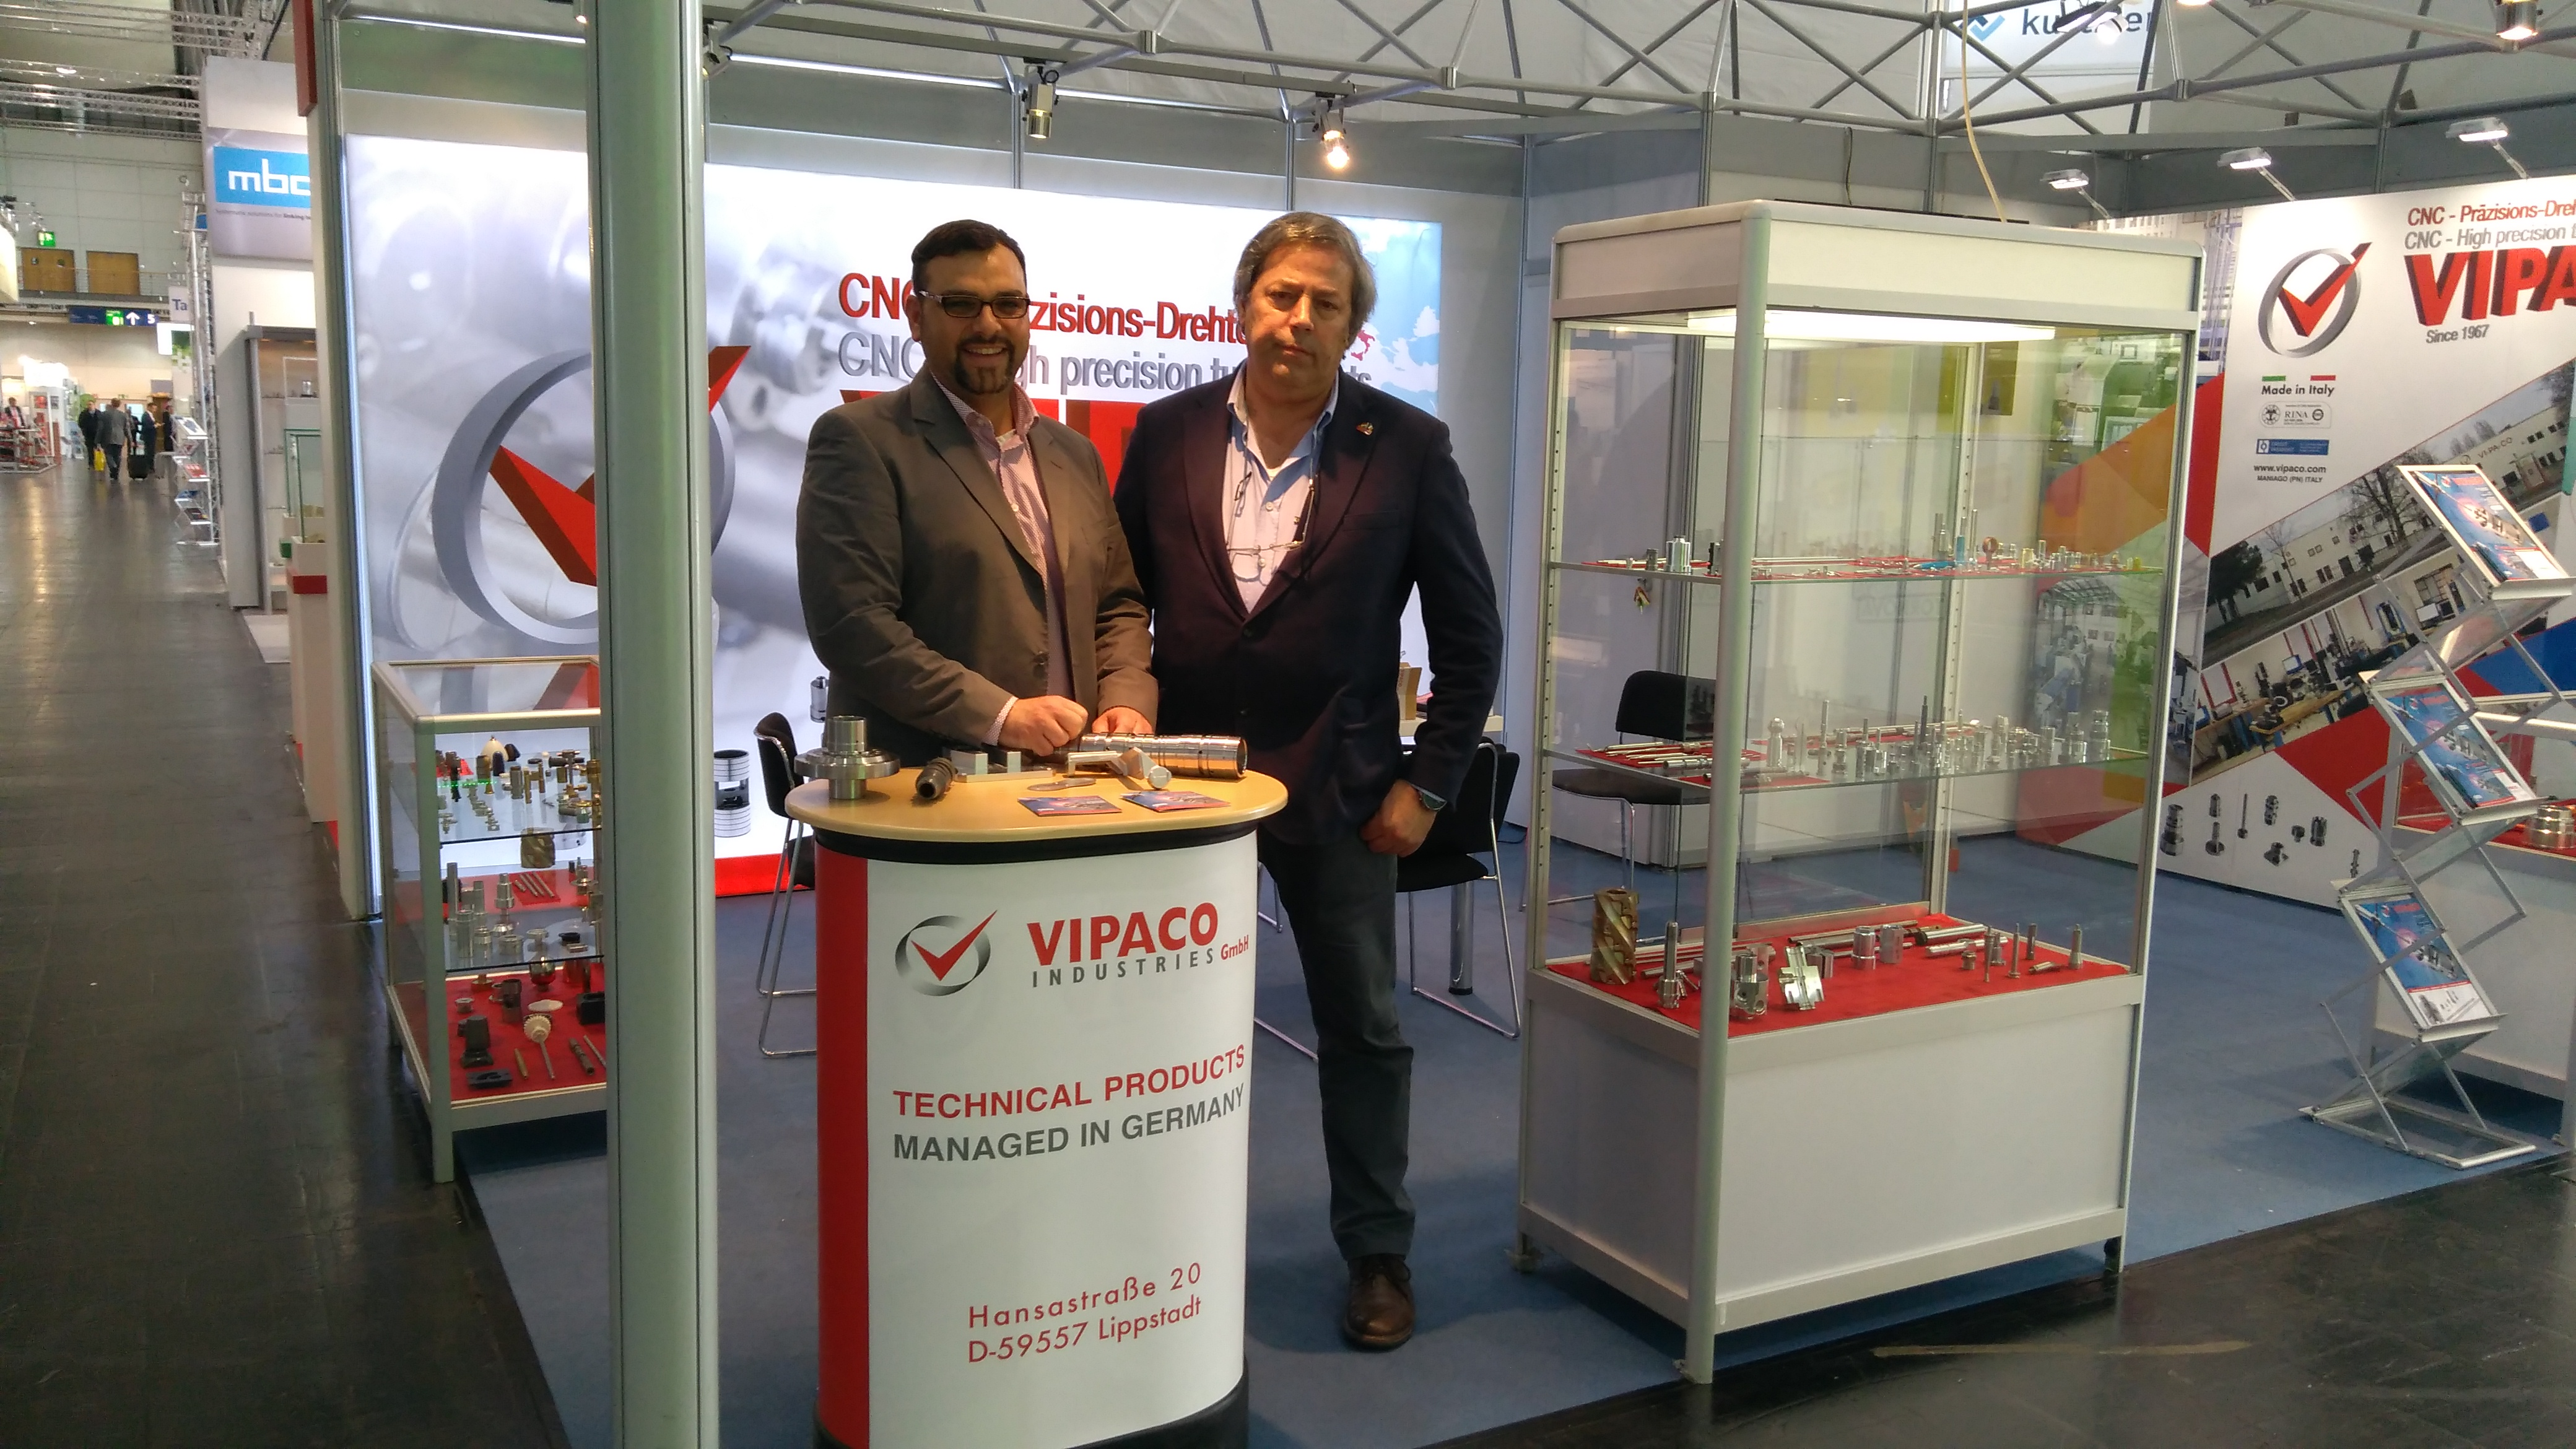 VIPACO INDUSTRIES GmbH - Hannover Messe 2017